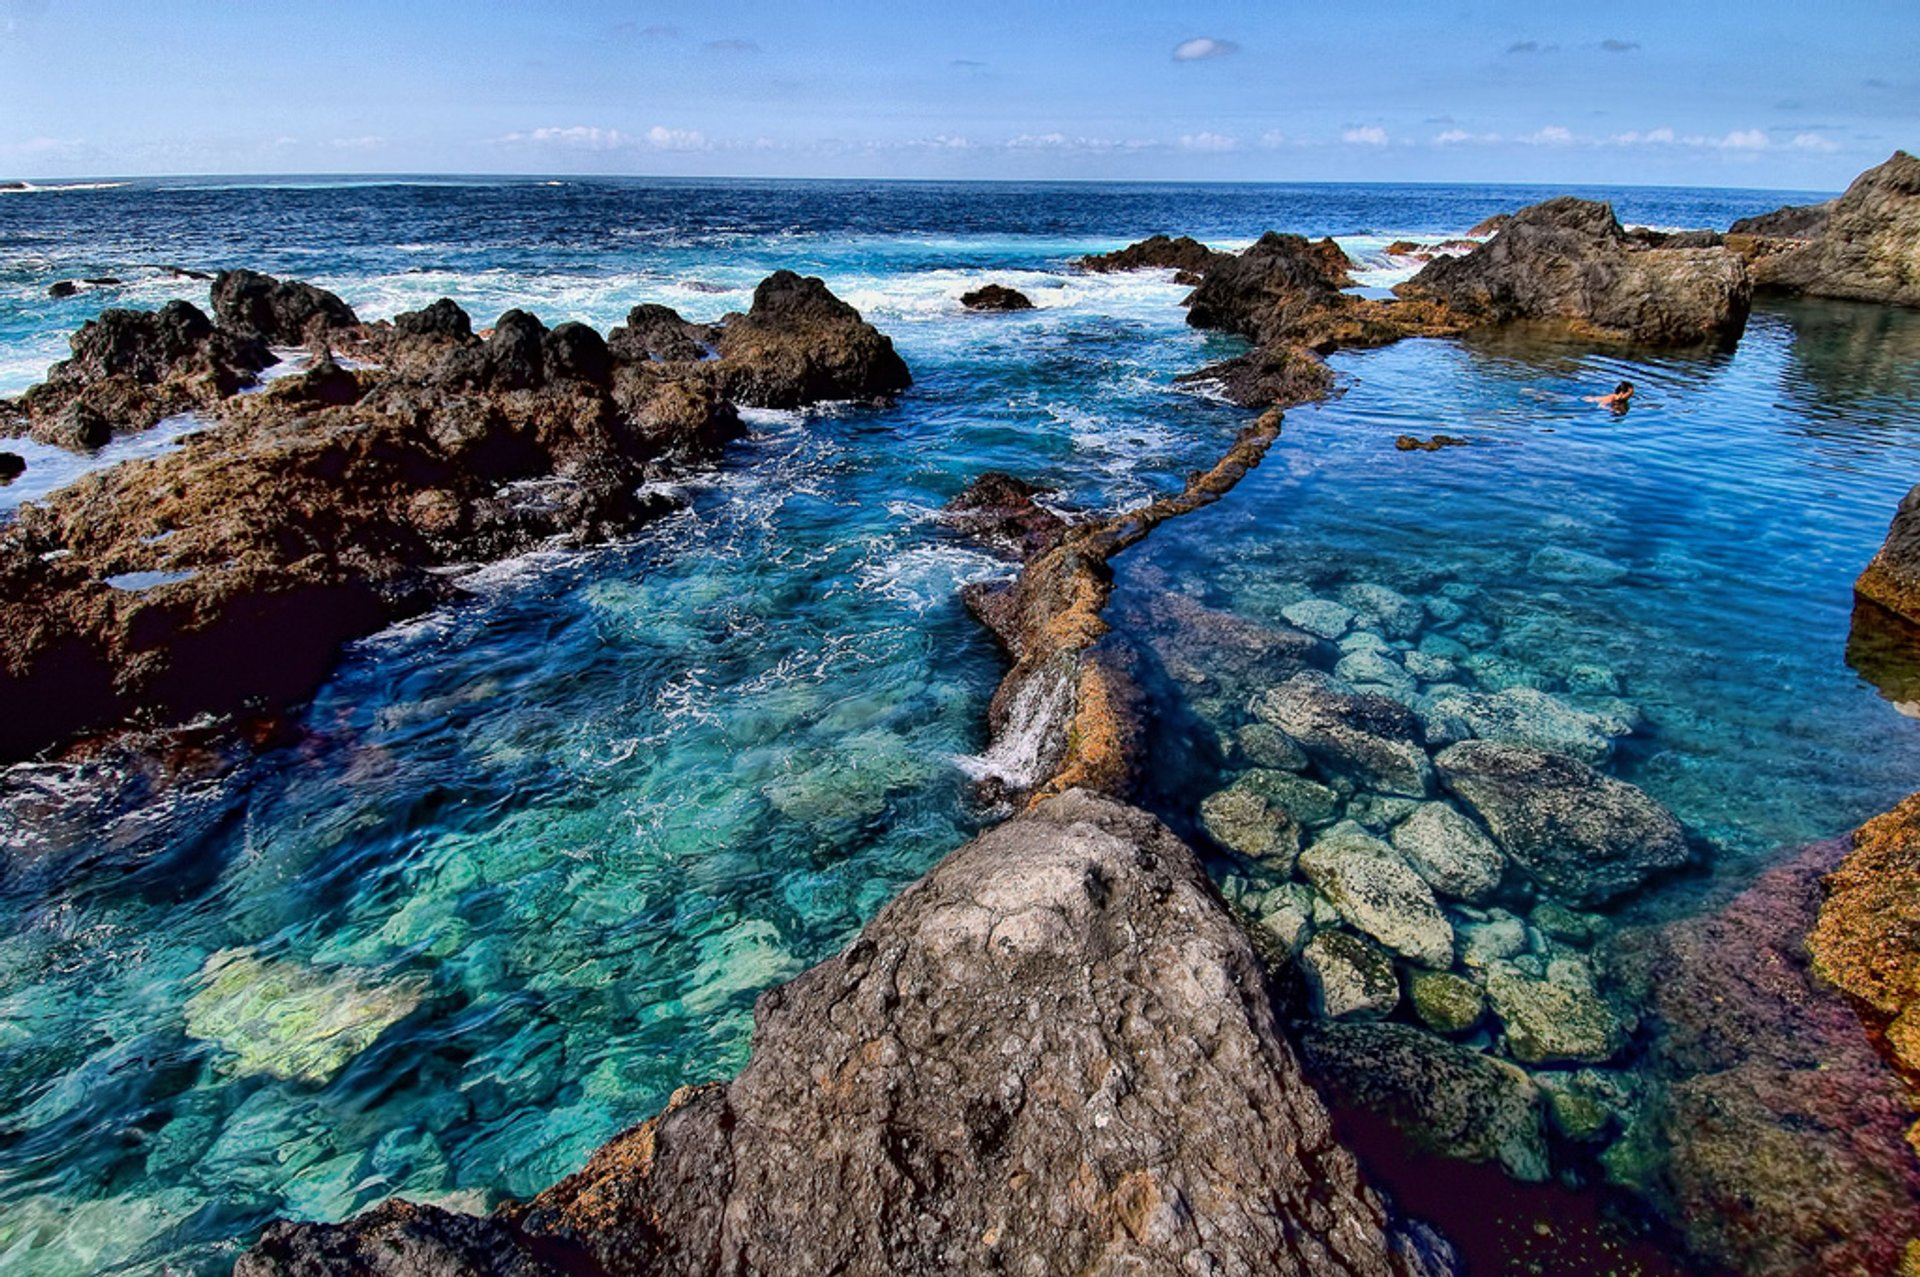 Natural Rock Pools in Canary Islands 2020 - Best Time